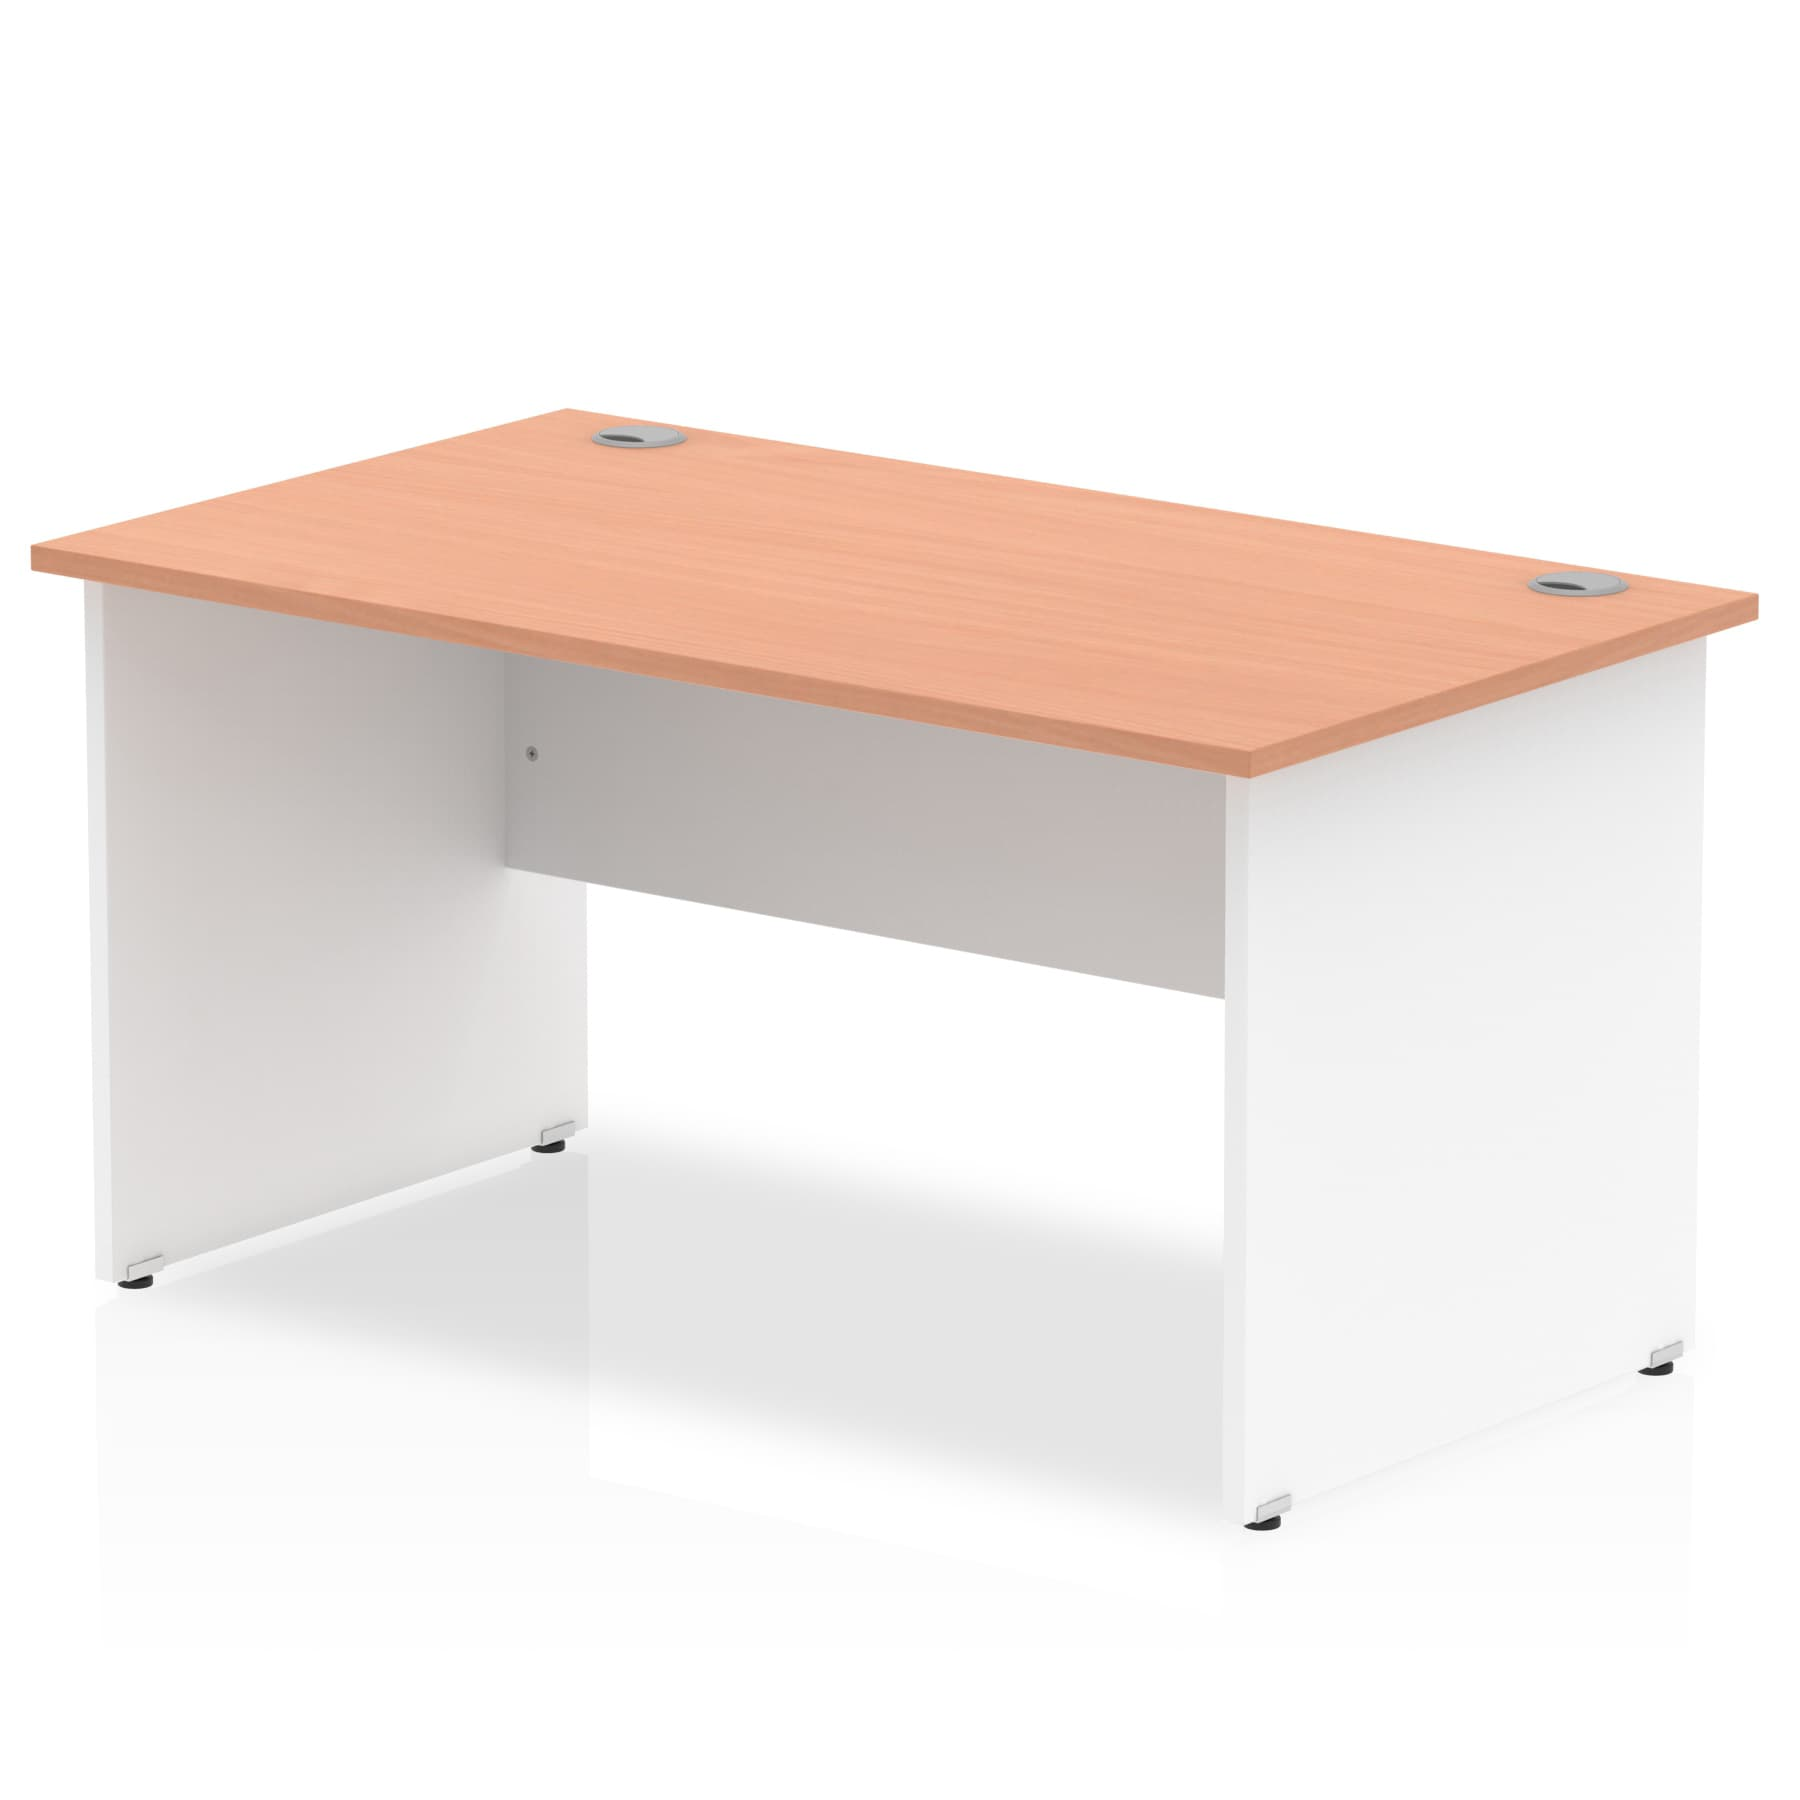 Impulse Panel End 1400 Rectangle Desk with White Panels